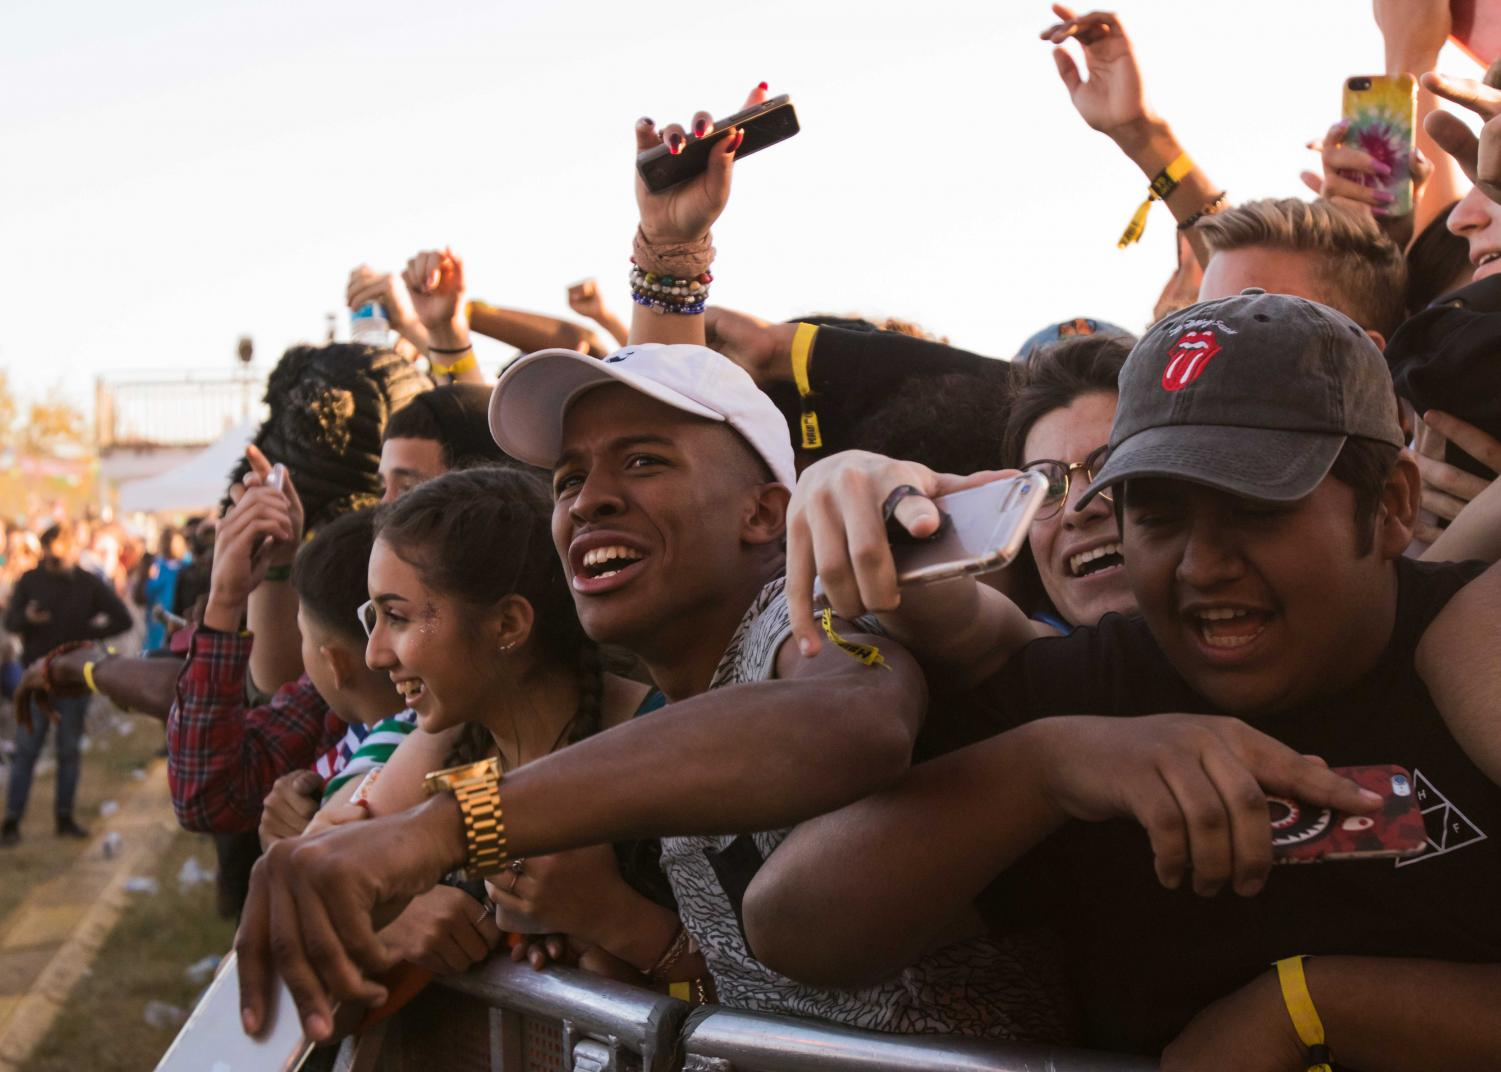 Die-hard fans squeezed together in the front of the crowd to watch artists perform at Mala Luna Festival.